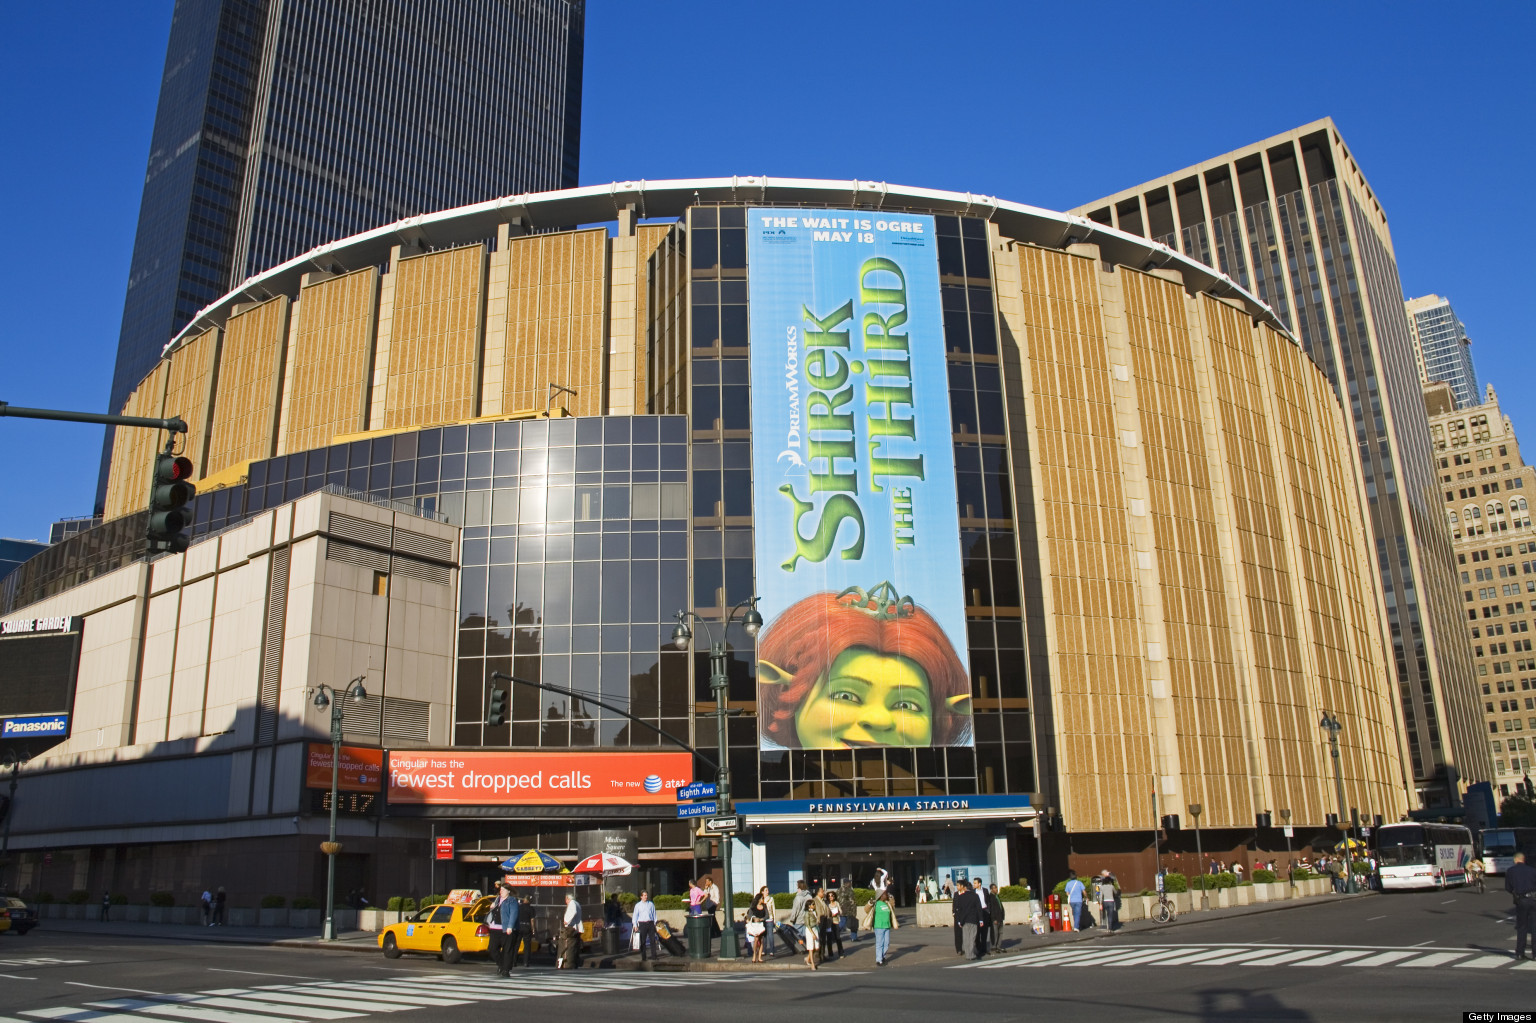 Madison square garden limited to 15 year permit in department of city planning decision huffpost for Address of madison square garden